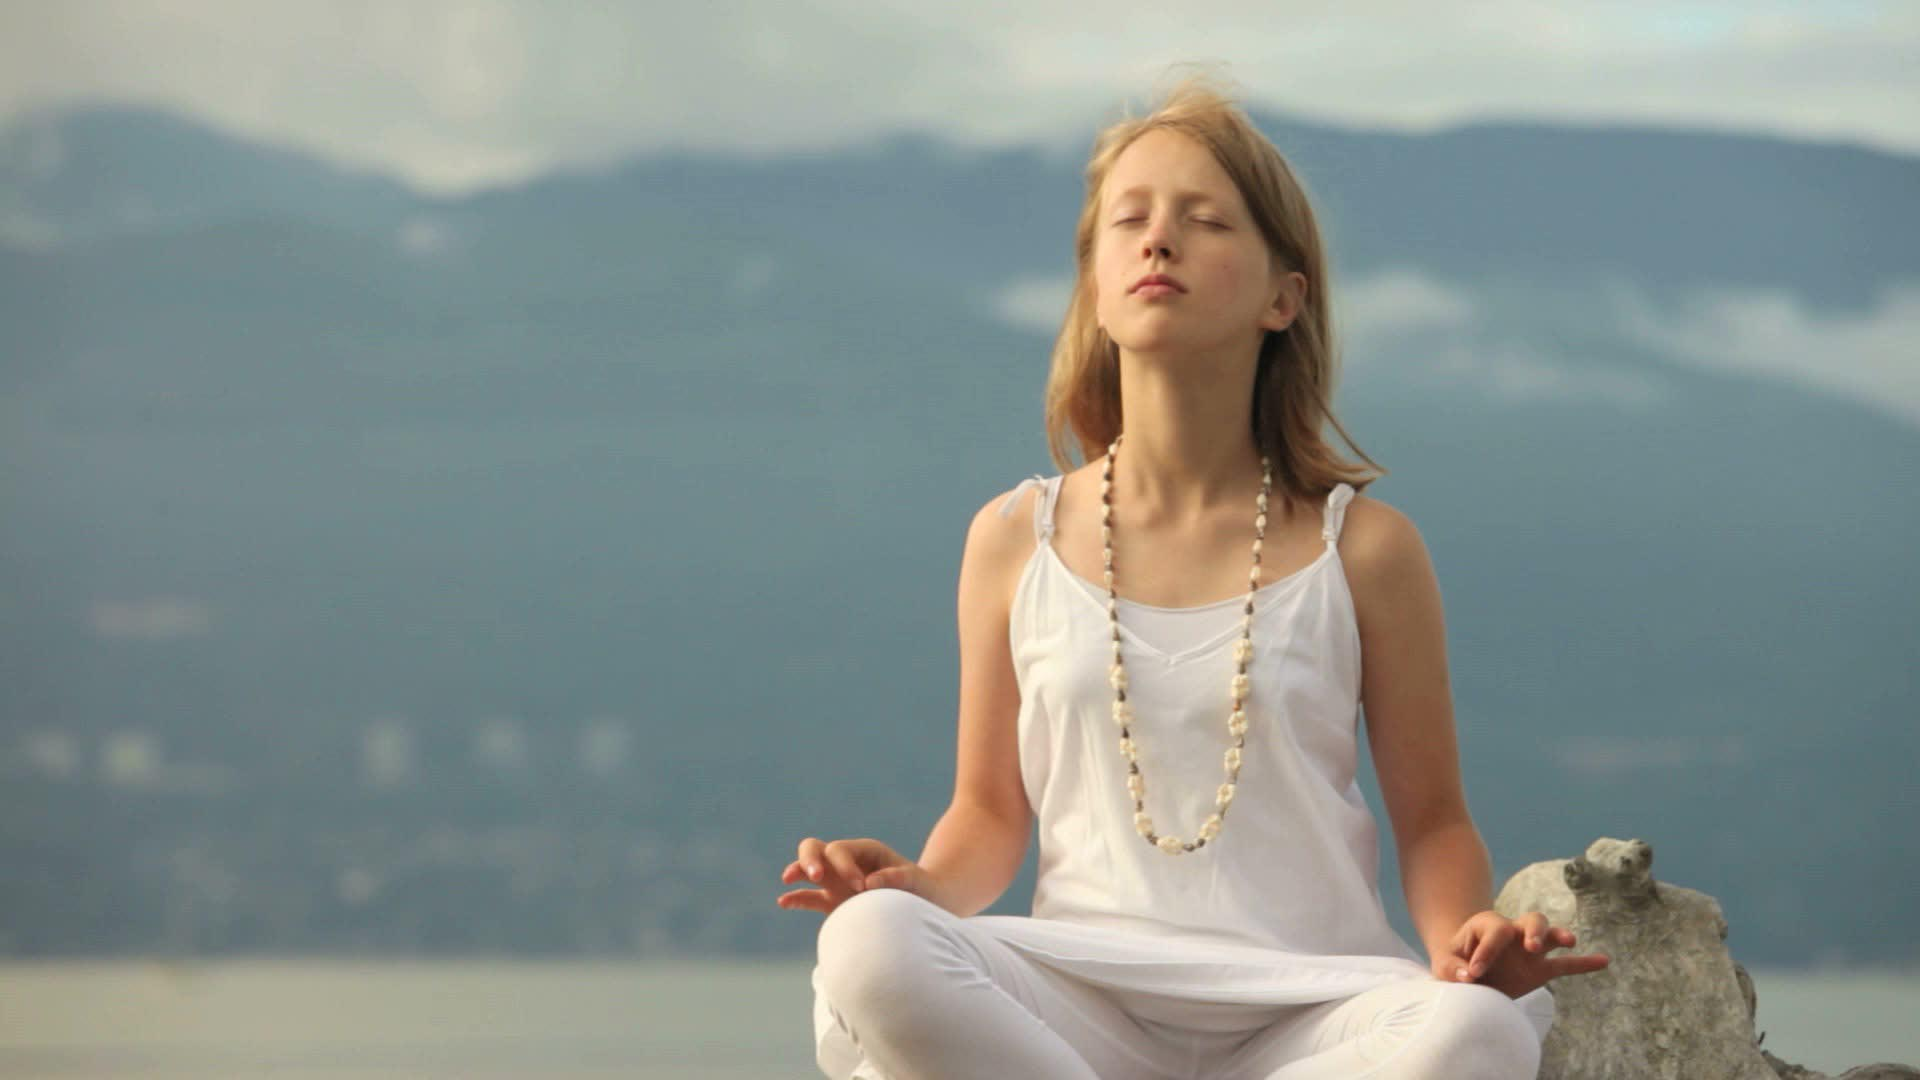 Young Girl Meditating And Yoga For Mindrelax Images Photos Download